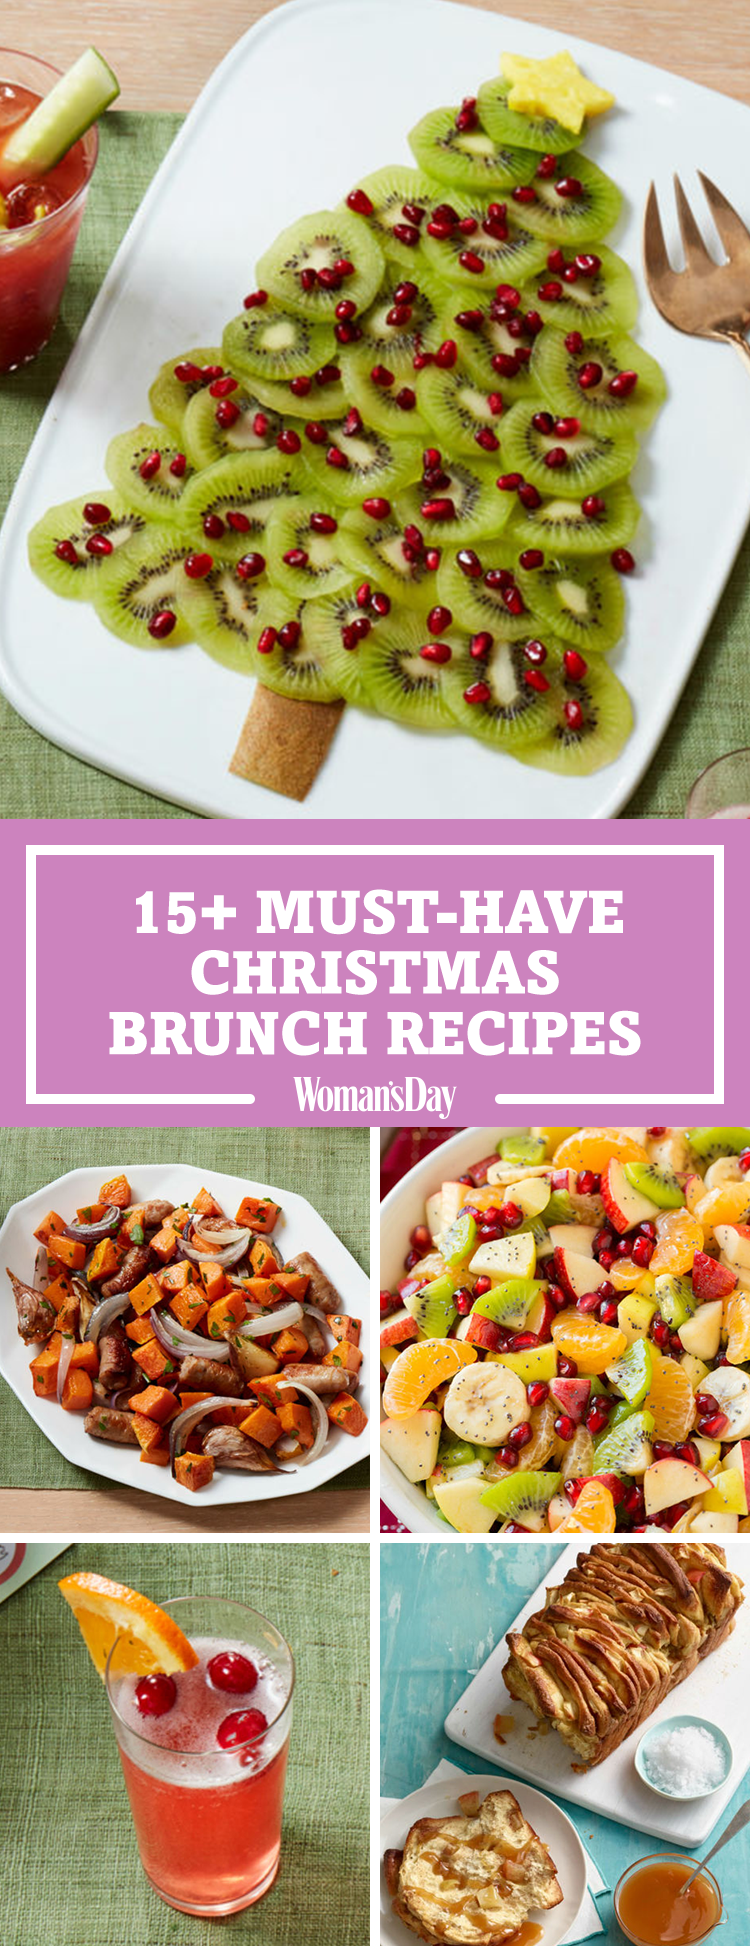 Christmas Brunch Recipes.Christmas Brunch The Best Christmas Brunch Menu